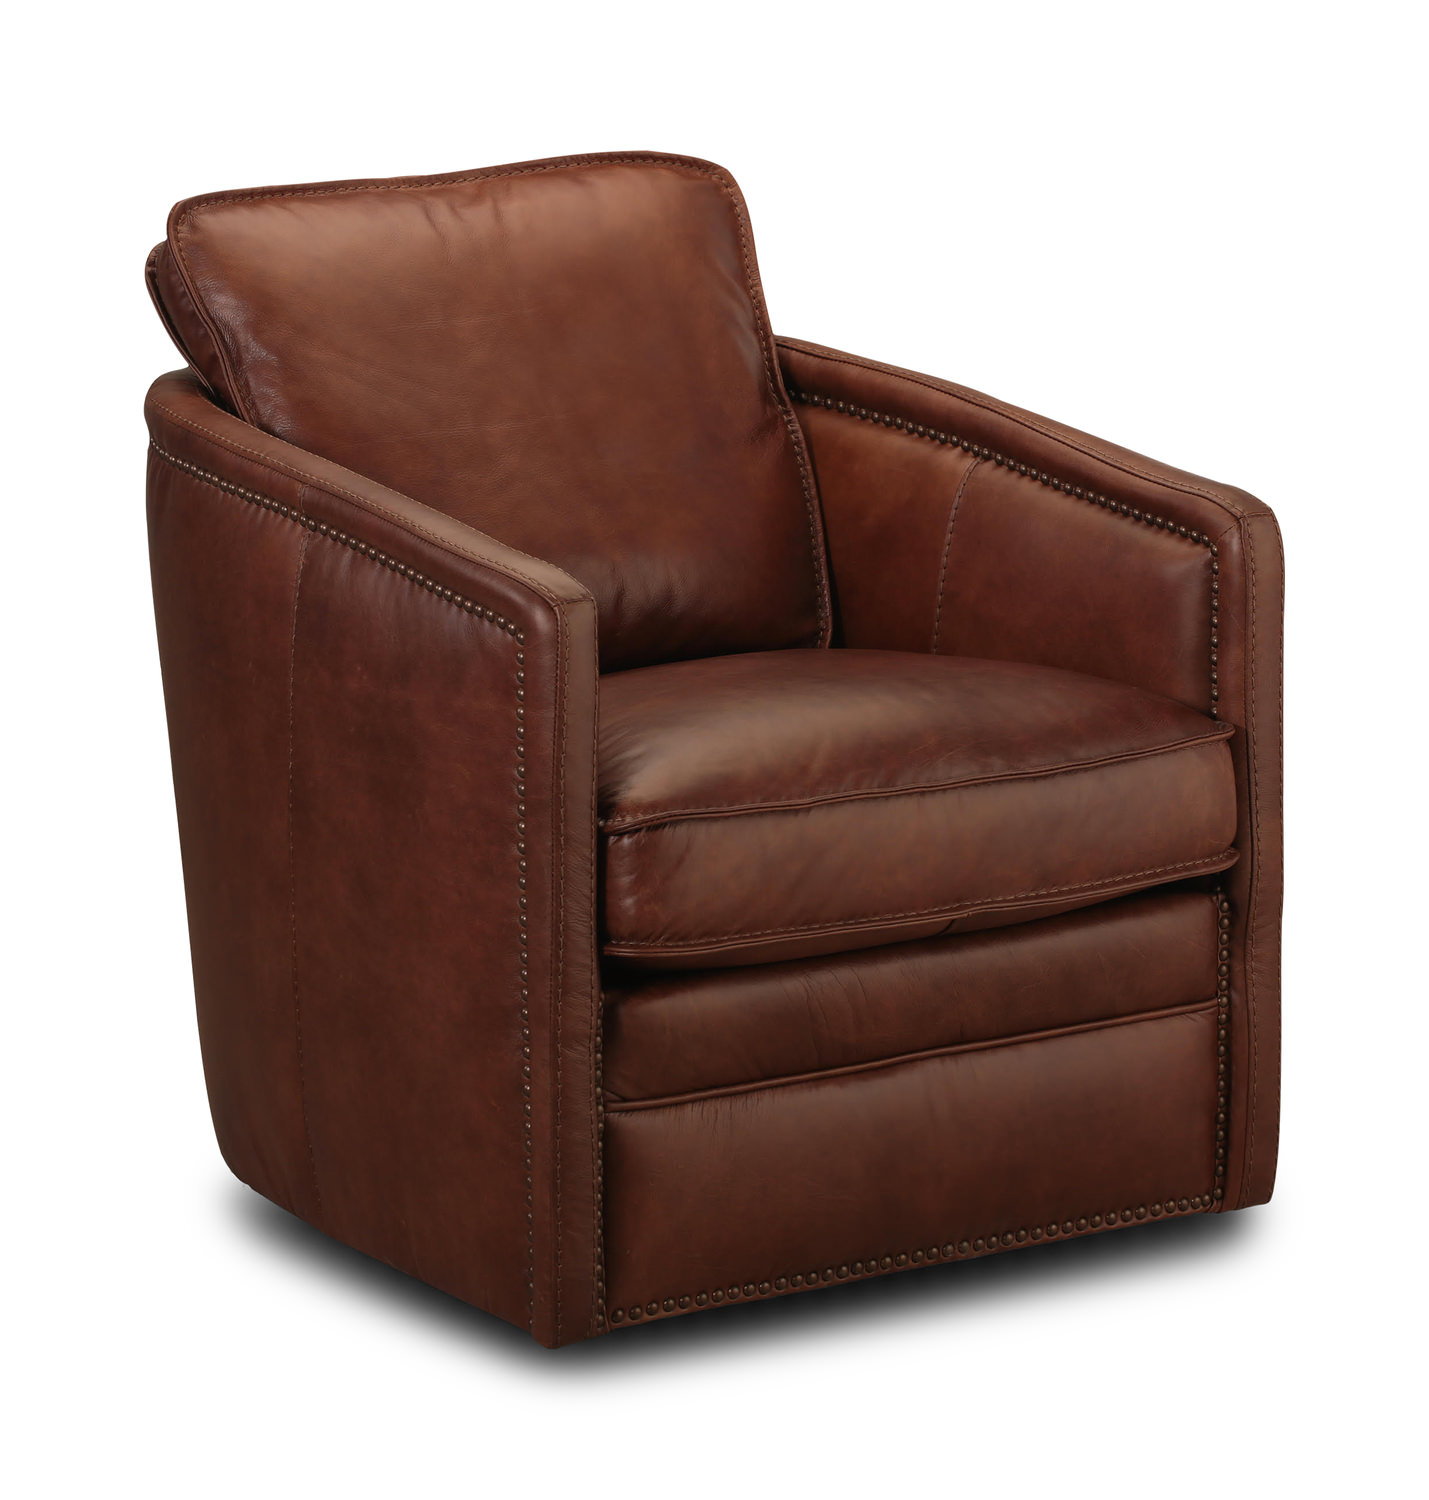 Surprising Pivot Leather Swivel Chair Pdpeps Interior Chair Design Pdpepsorg